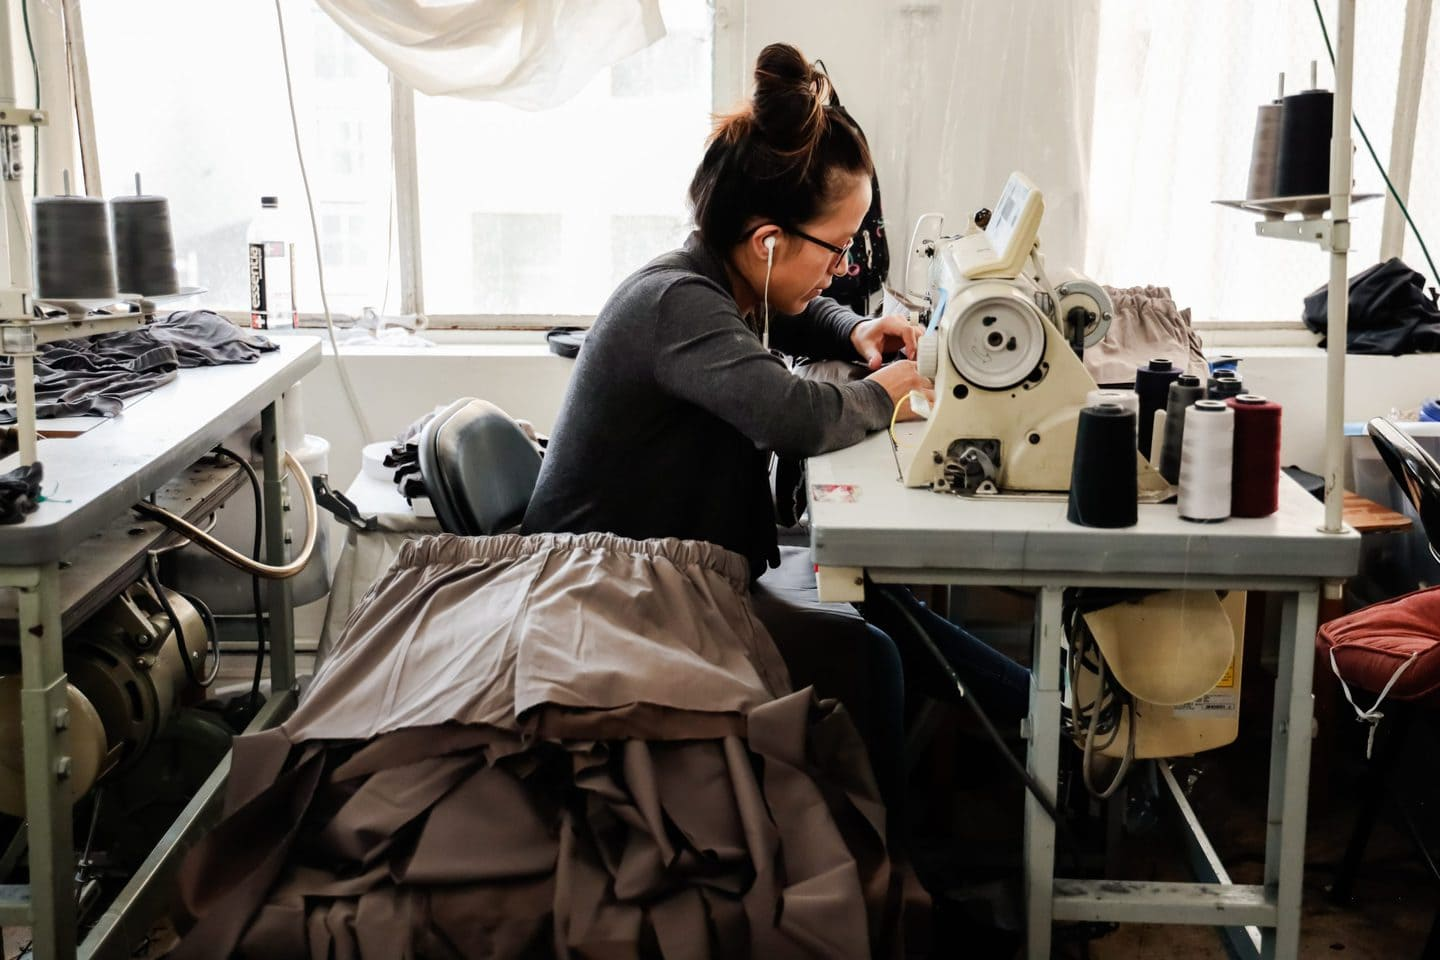 A Los Angeles clothing manufacturer working on bespoke fashion on a sewing machine